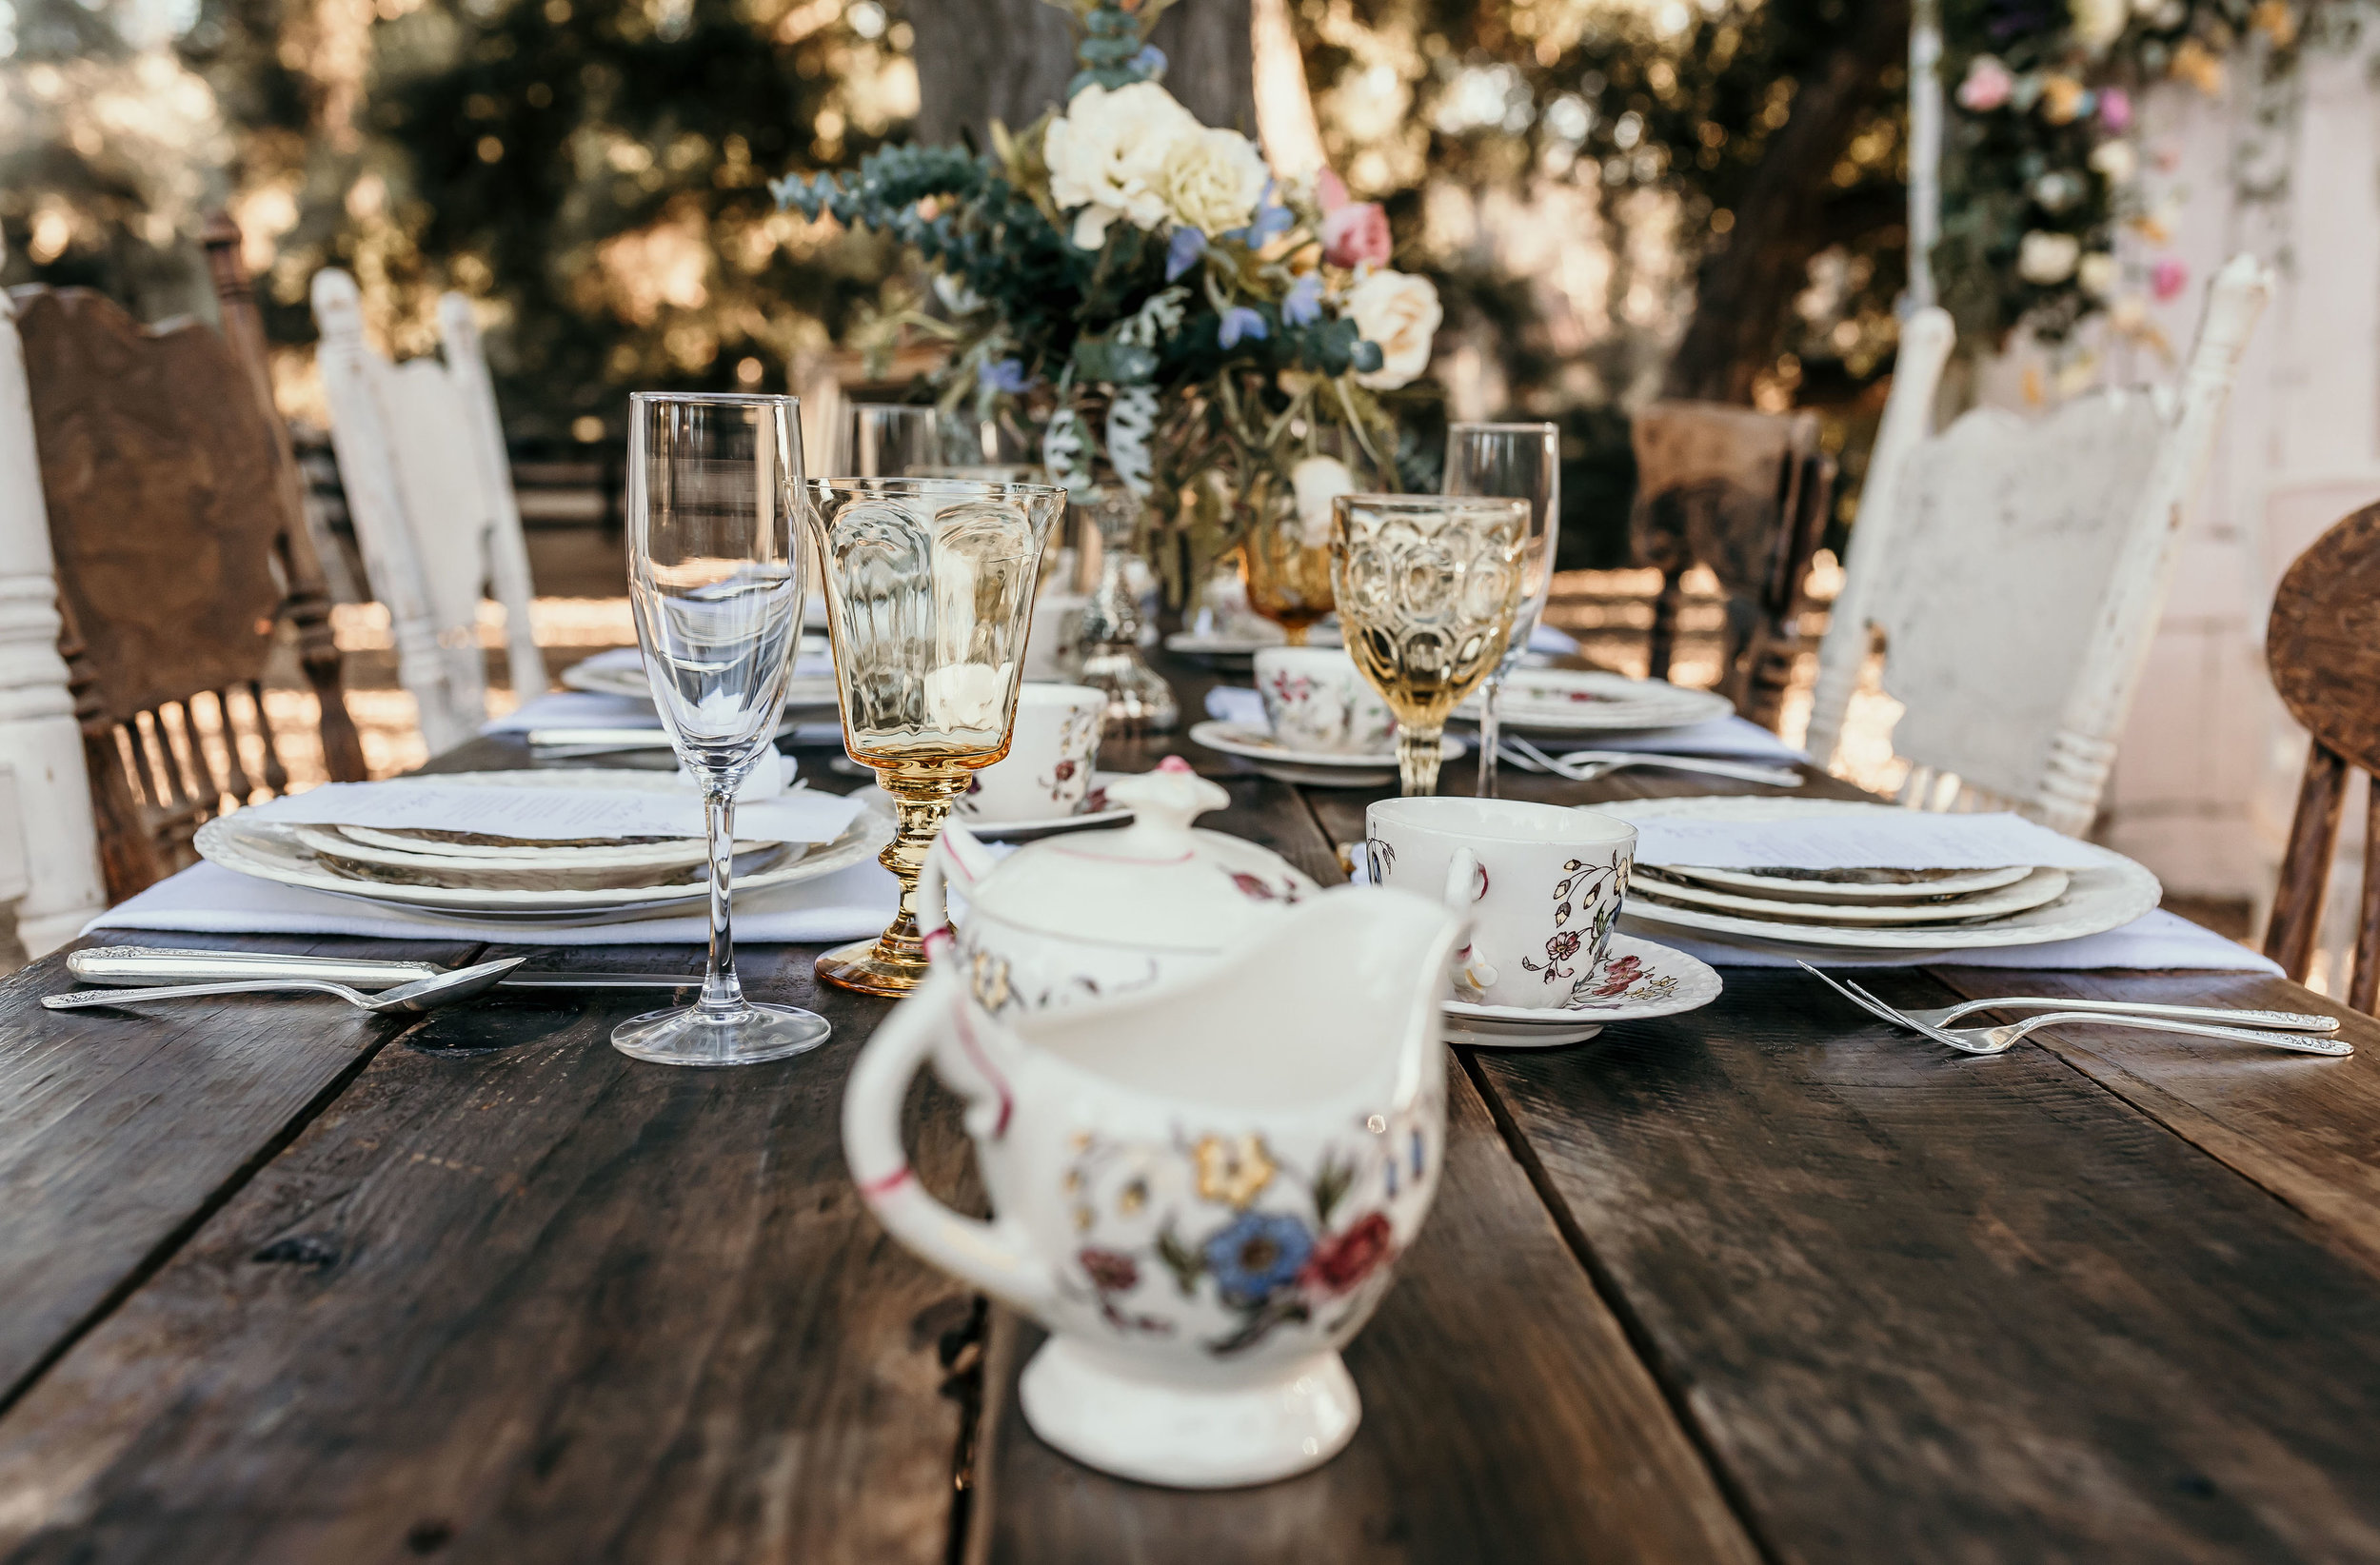 Vintage china and crystal goblets set on a farm table waiting for the wedding party to arrive. This was provided by Birdie in a Barn in Murrieta.